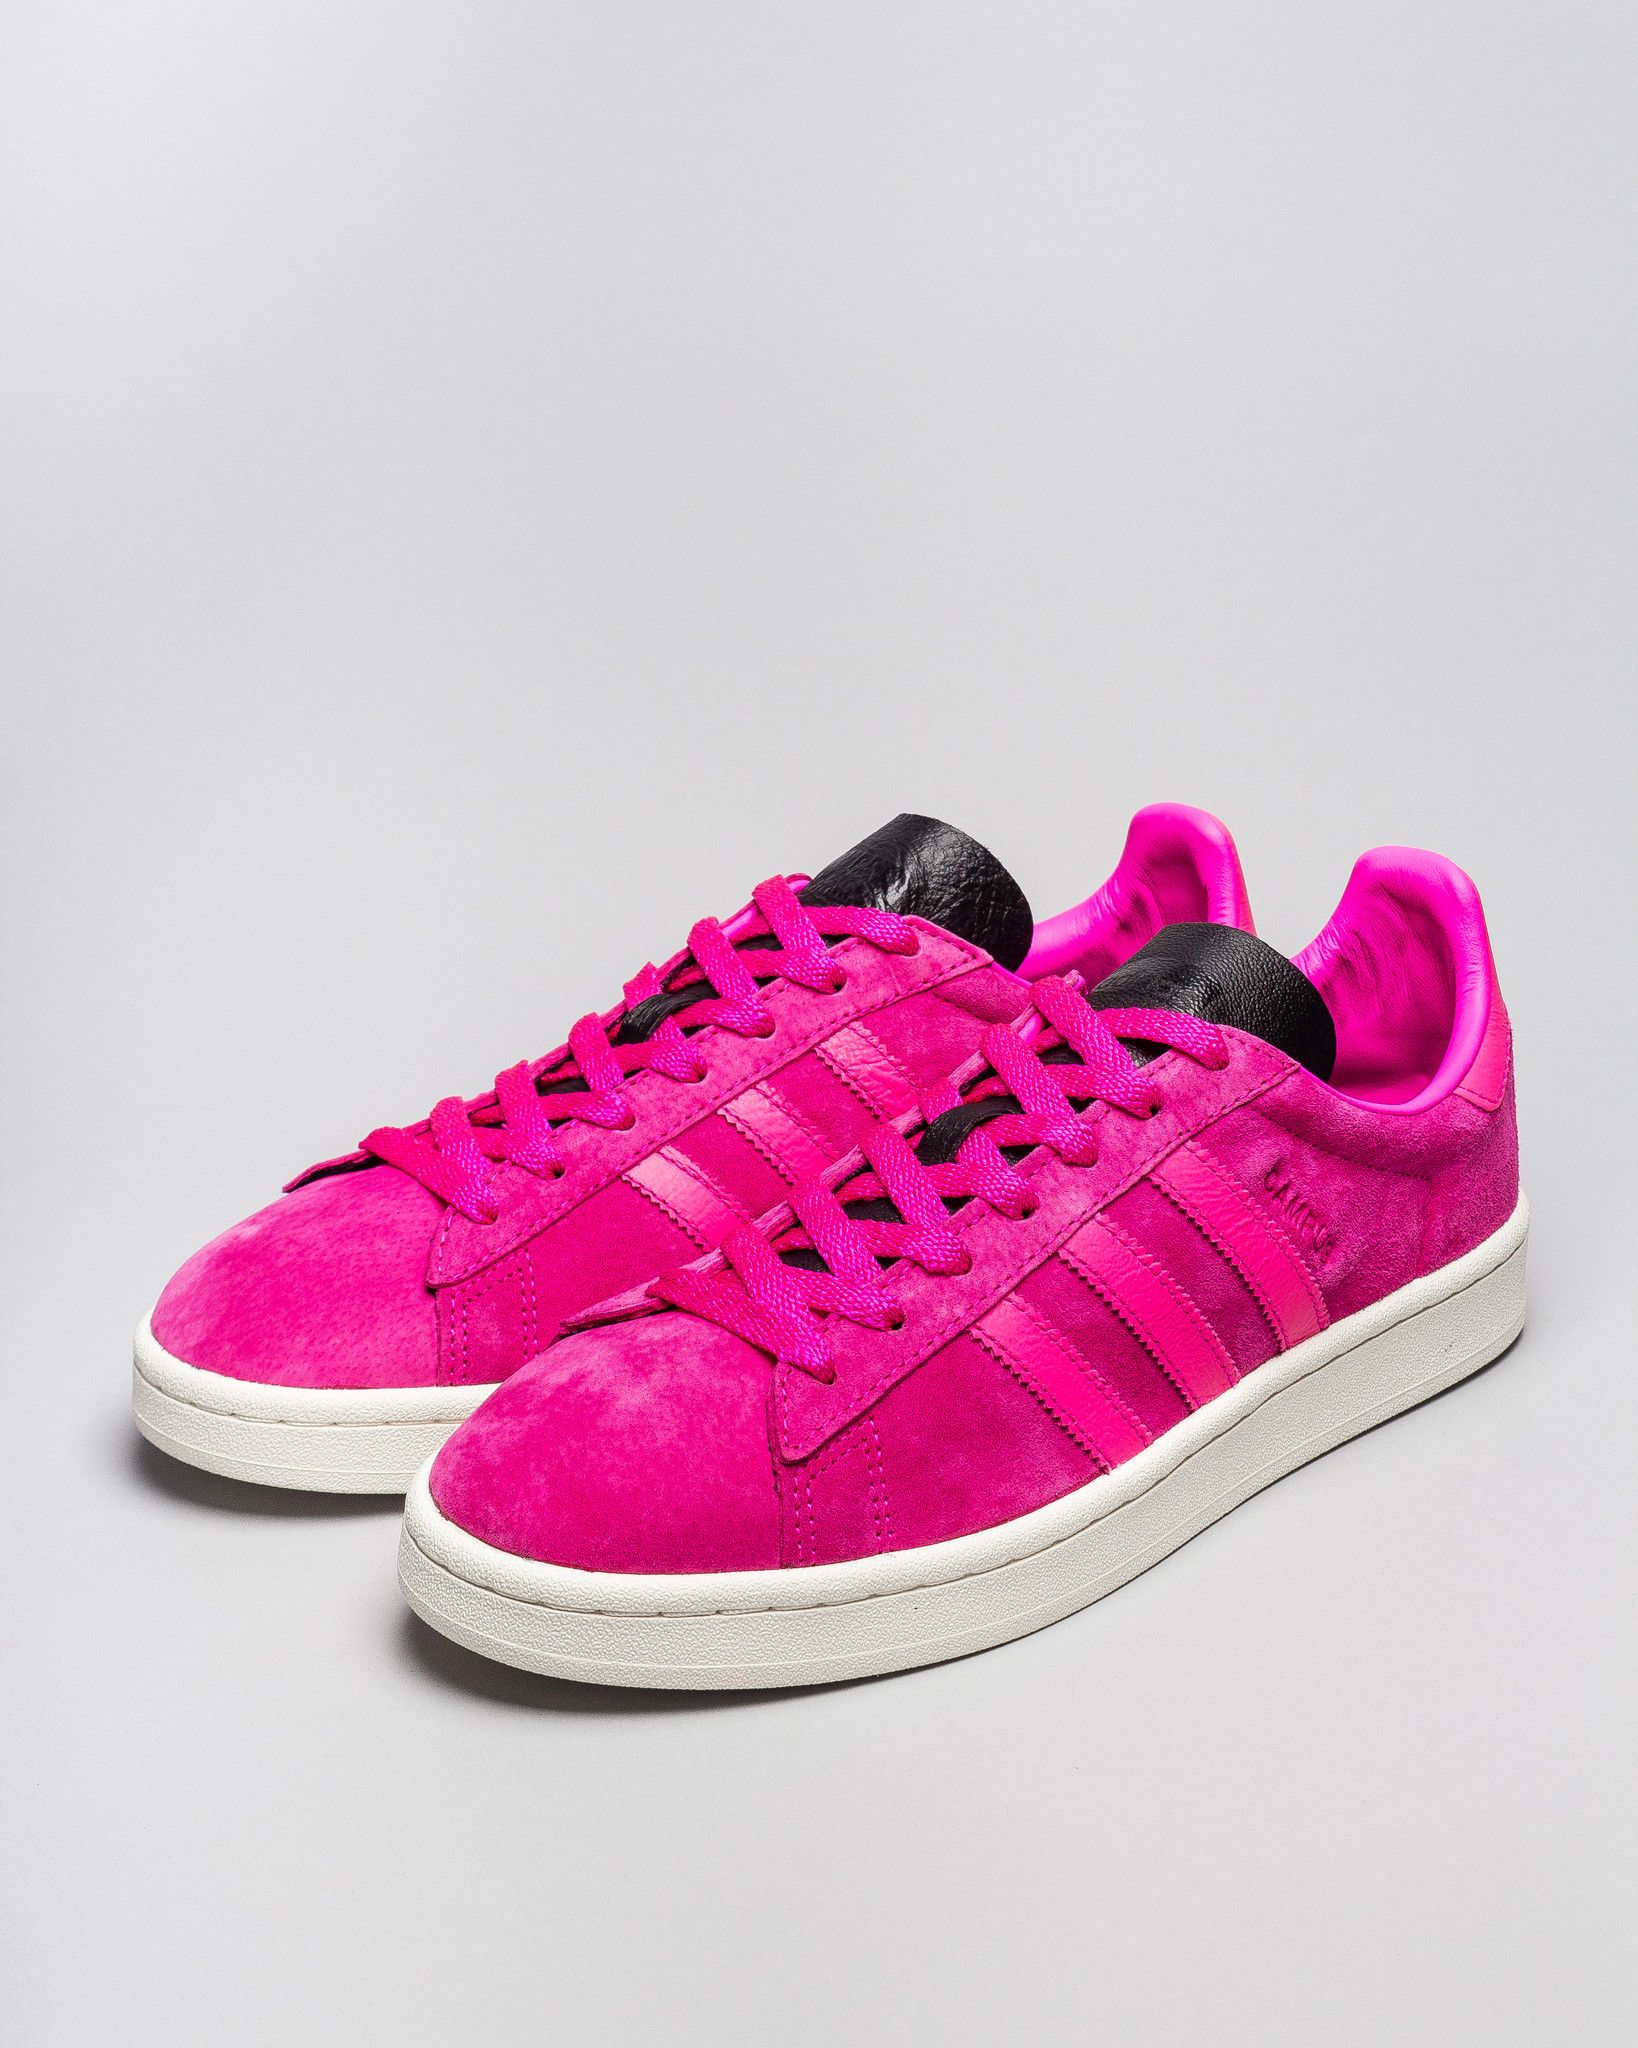 adidas shoes rainbow things breakfast near me current 598810